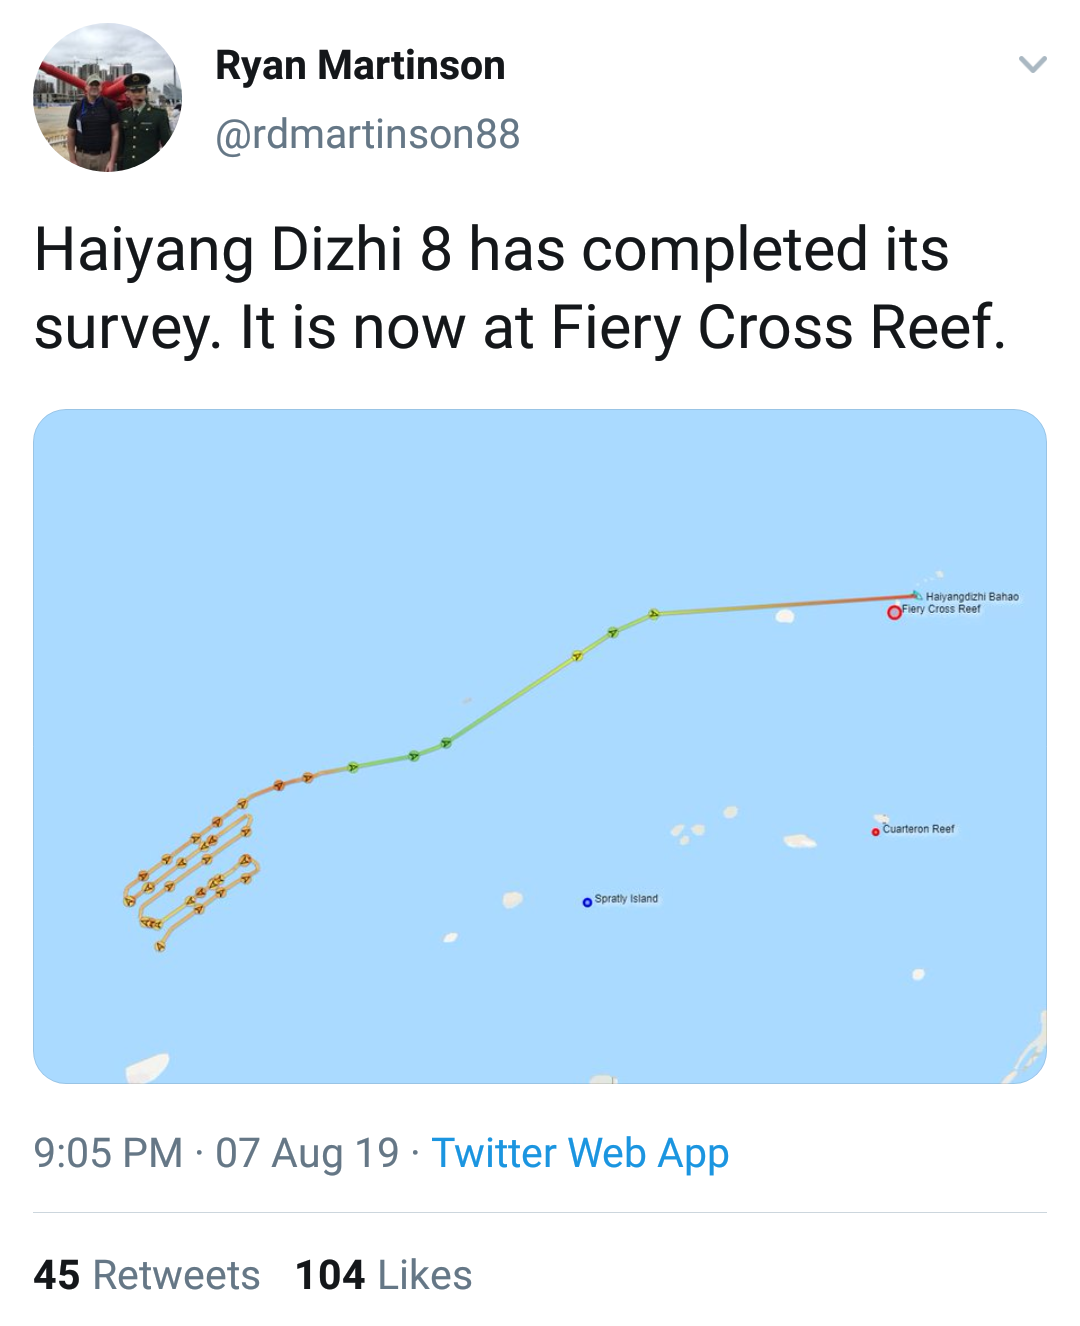 A Twitter post by Prof. Ryan Martinson showing the location and recent path of the Chinese survey ship Haiyand Dizhi 8 as of August 7, 2019.